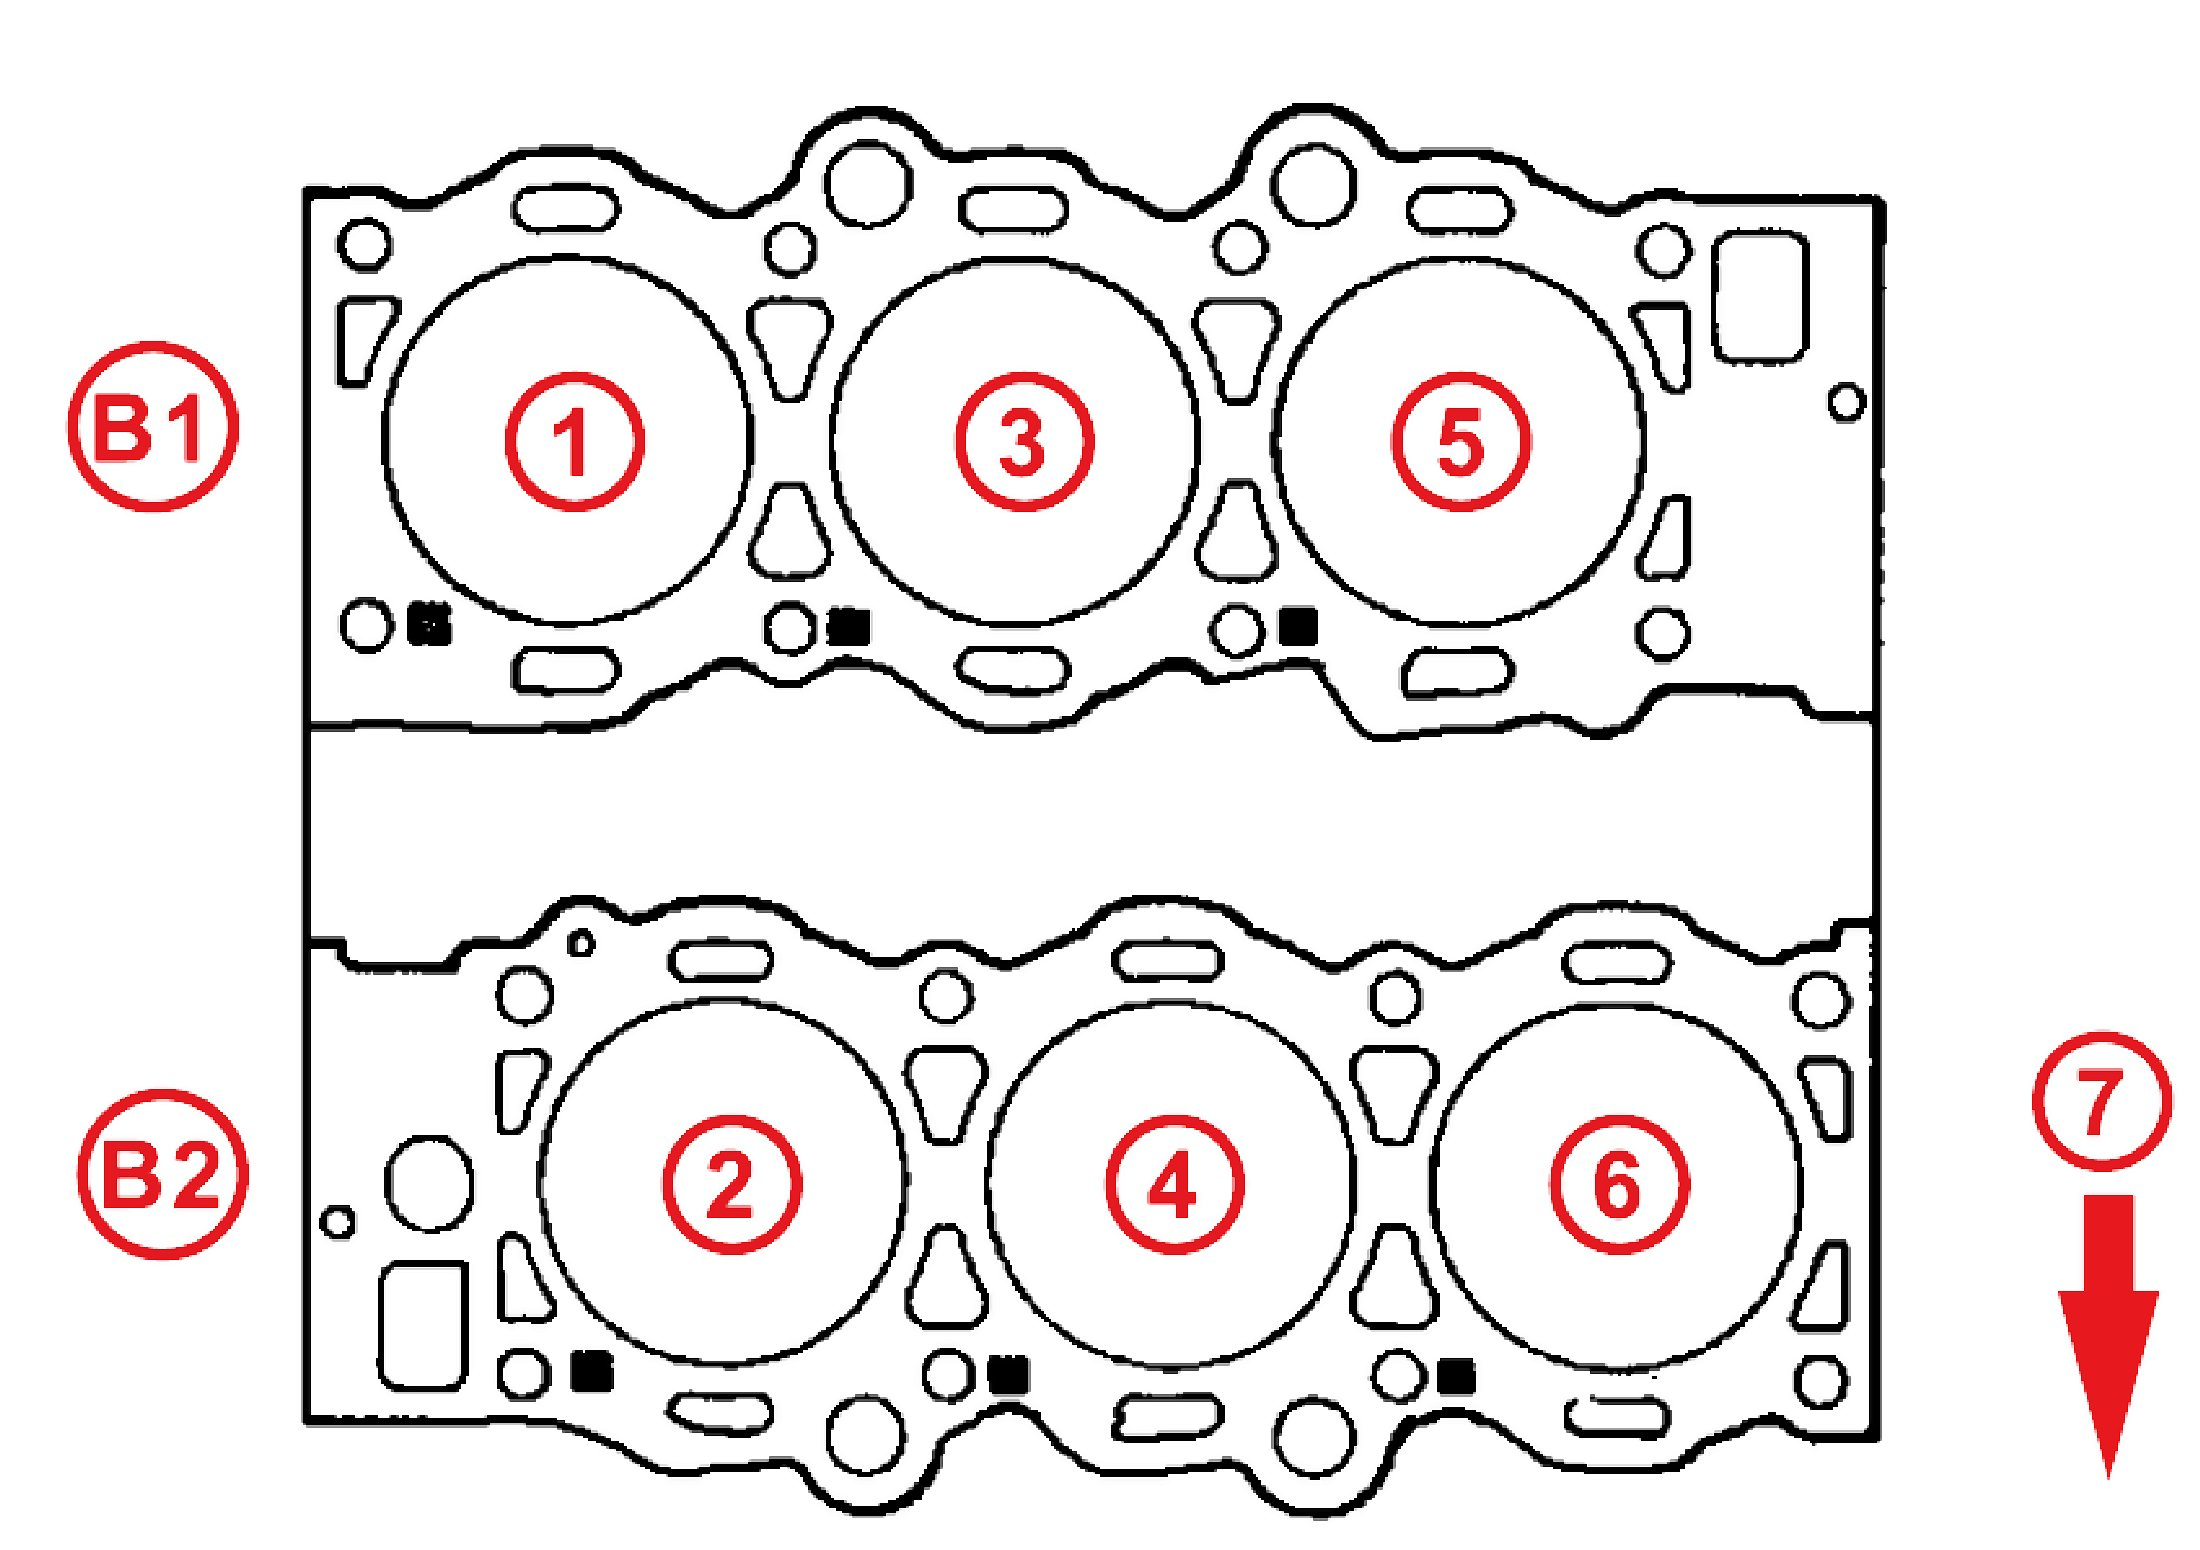 Where Is The Camshaft Sensor For 2005 Toyota Avalon Autocodes Qa Cam Wiring Diagram 1 Answer P0393 Position